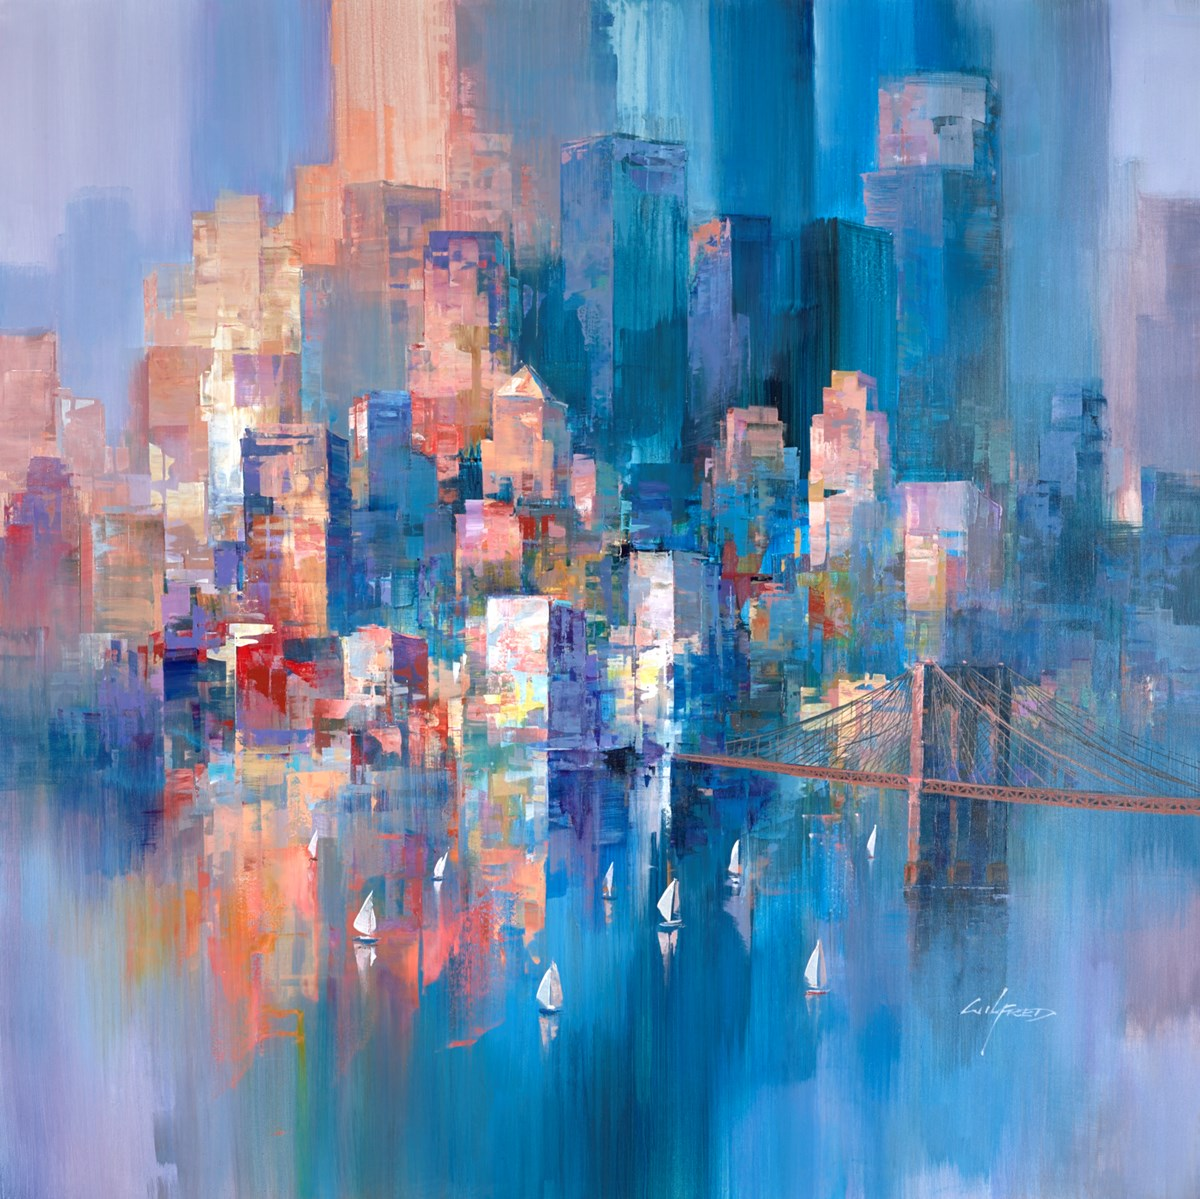 City Sunset VI by wilfred -  sized 38x38 inches. Available from Whitewall Galleries